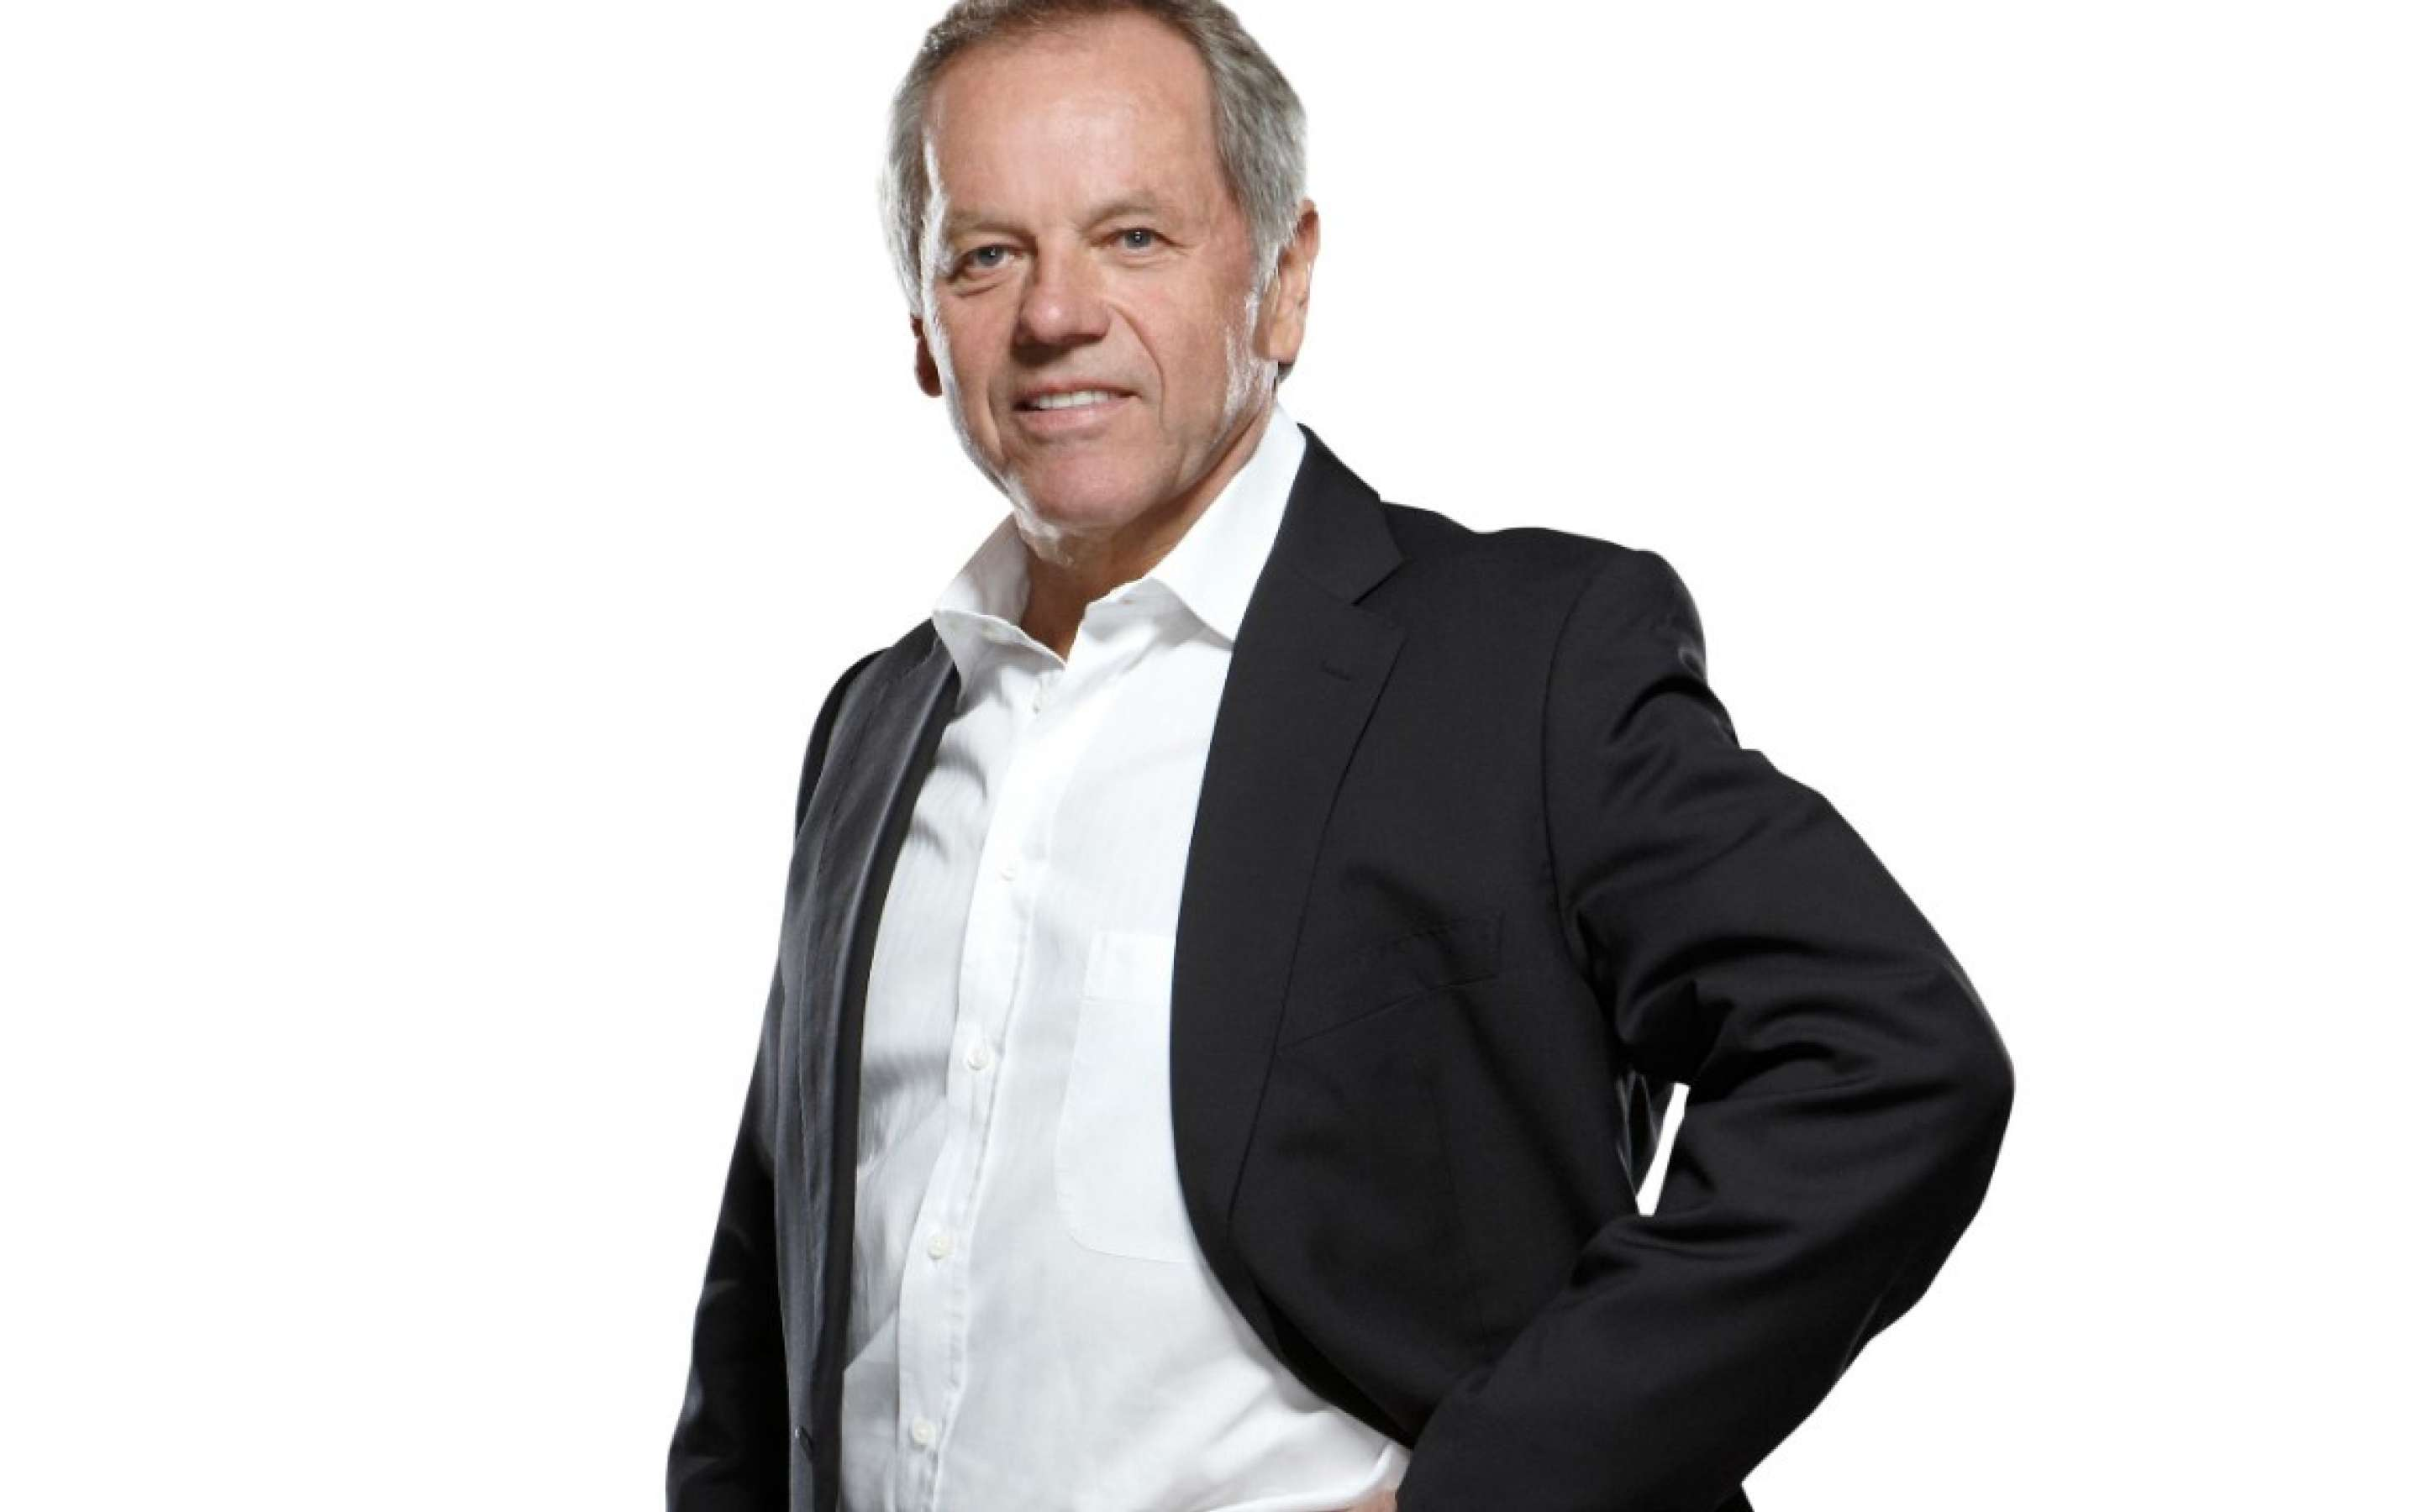 Chef Wolfgang Puck standing in a black suit